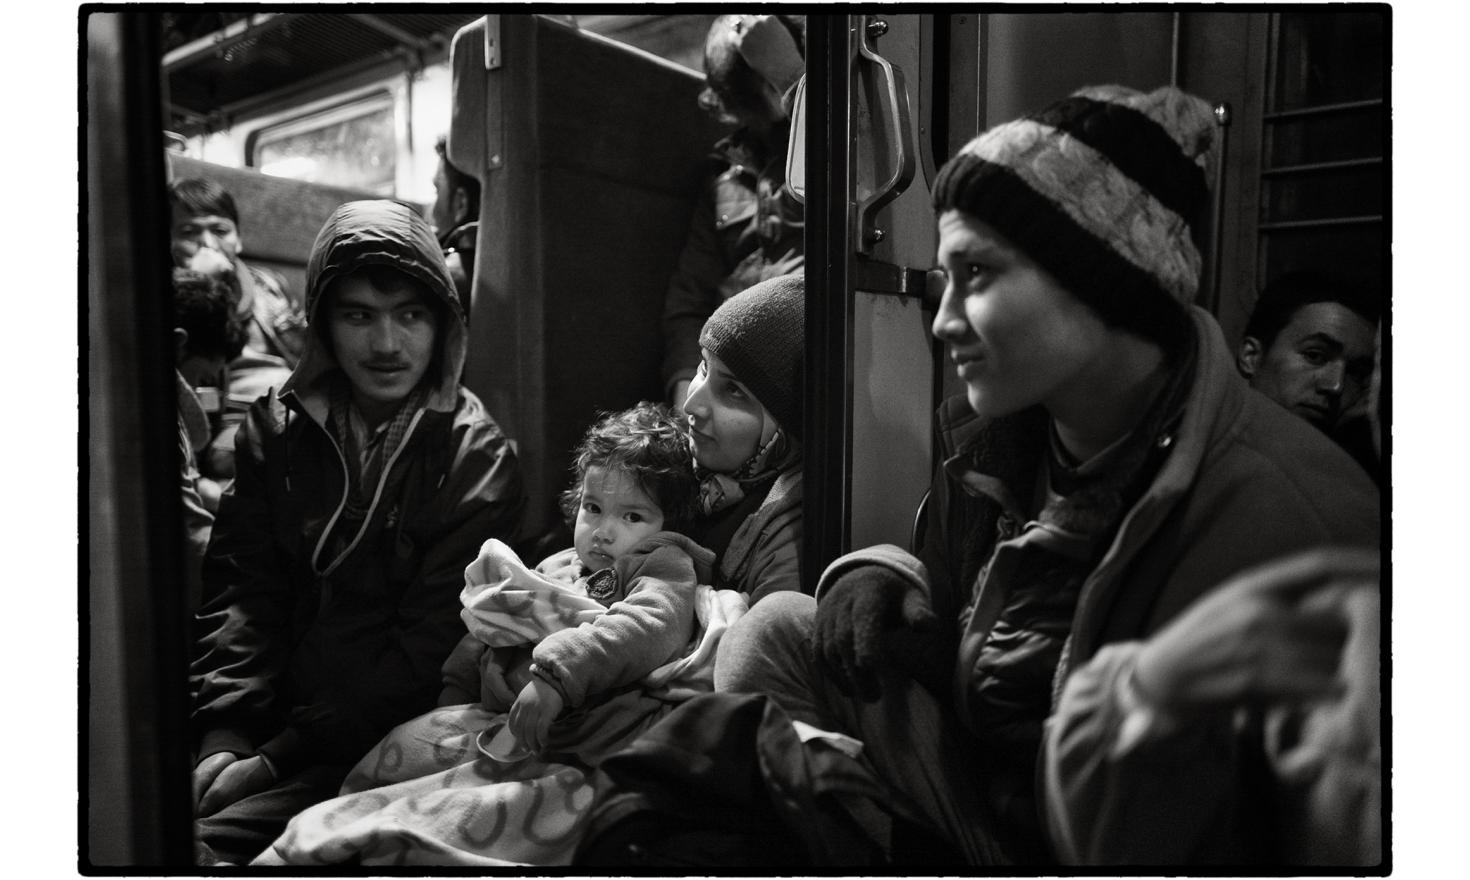 Gevgelija, Former Yugoslav Republic of Macedonia. At the Gevgelija transit camp, train convoys arranged by state authorities await the refugees. Families eager to continue their journey to northern Europe pile onto the trains. Men, women, children, old pe